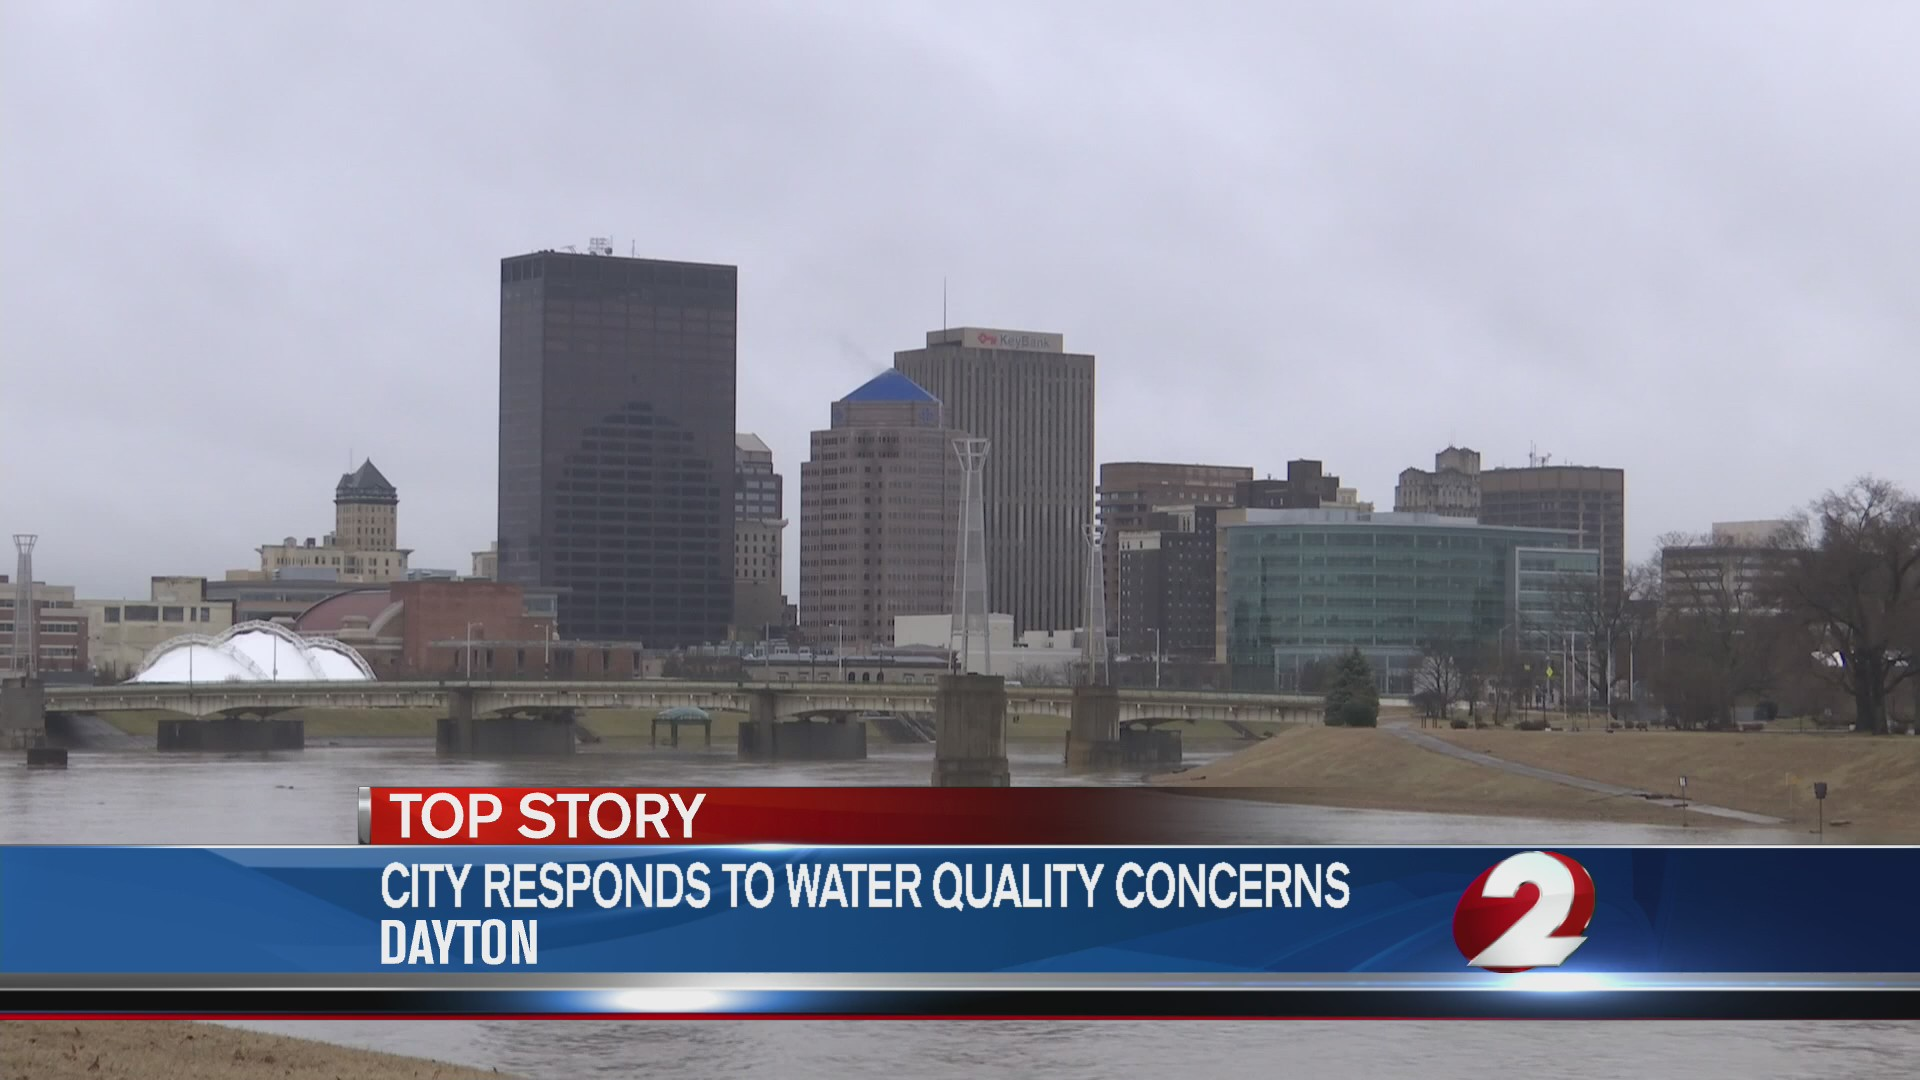 Dayton officials respond to water quality concerns